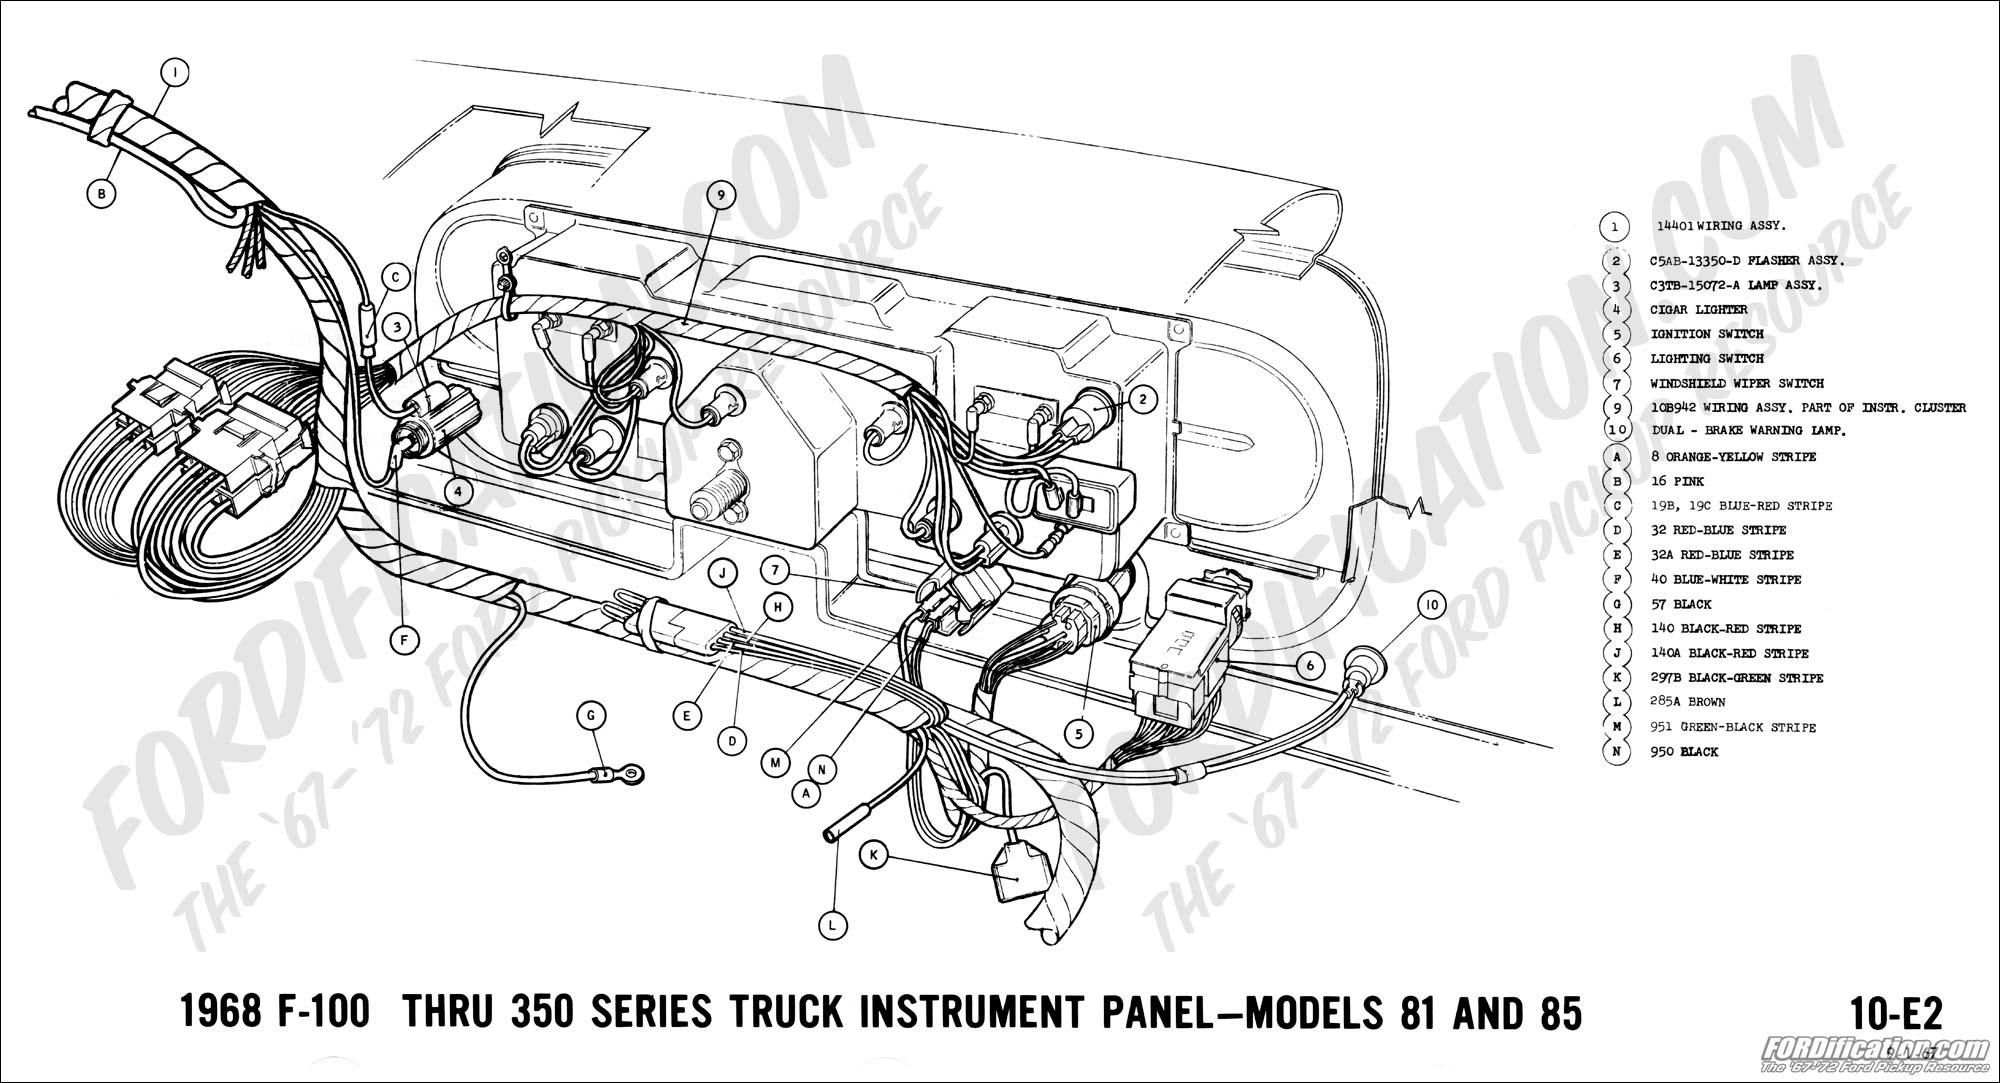 Ford Truck Technical Drawings and Schematics - Section H ... on 85 ford f150 suspension, 85 ford f150 engine, 85 ford f150 timing, 85 ford f150 seats, 85 ford f150 door, 85 ford f150 speaker, 85 ford f150 transmission, 85 ford f150 regulator, 85 ford f150 radio, 85 ford f150 exhaust system, 85 ford f150 parts, 85 ford f150 carburetor, 85 ford f150 headlight, 85 ford f150 brakes,